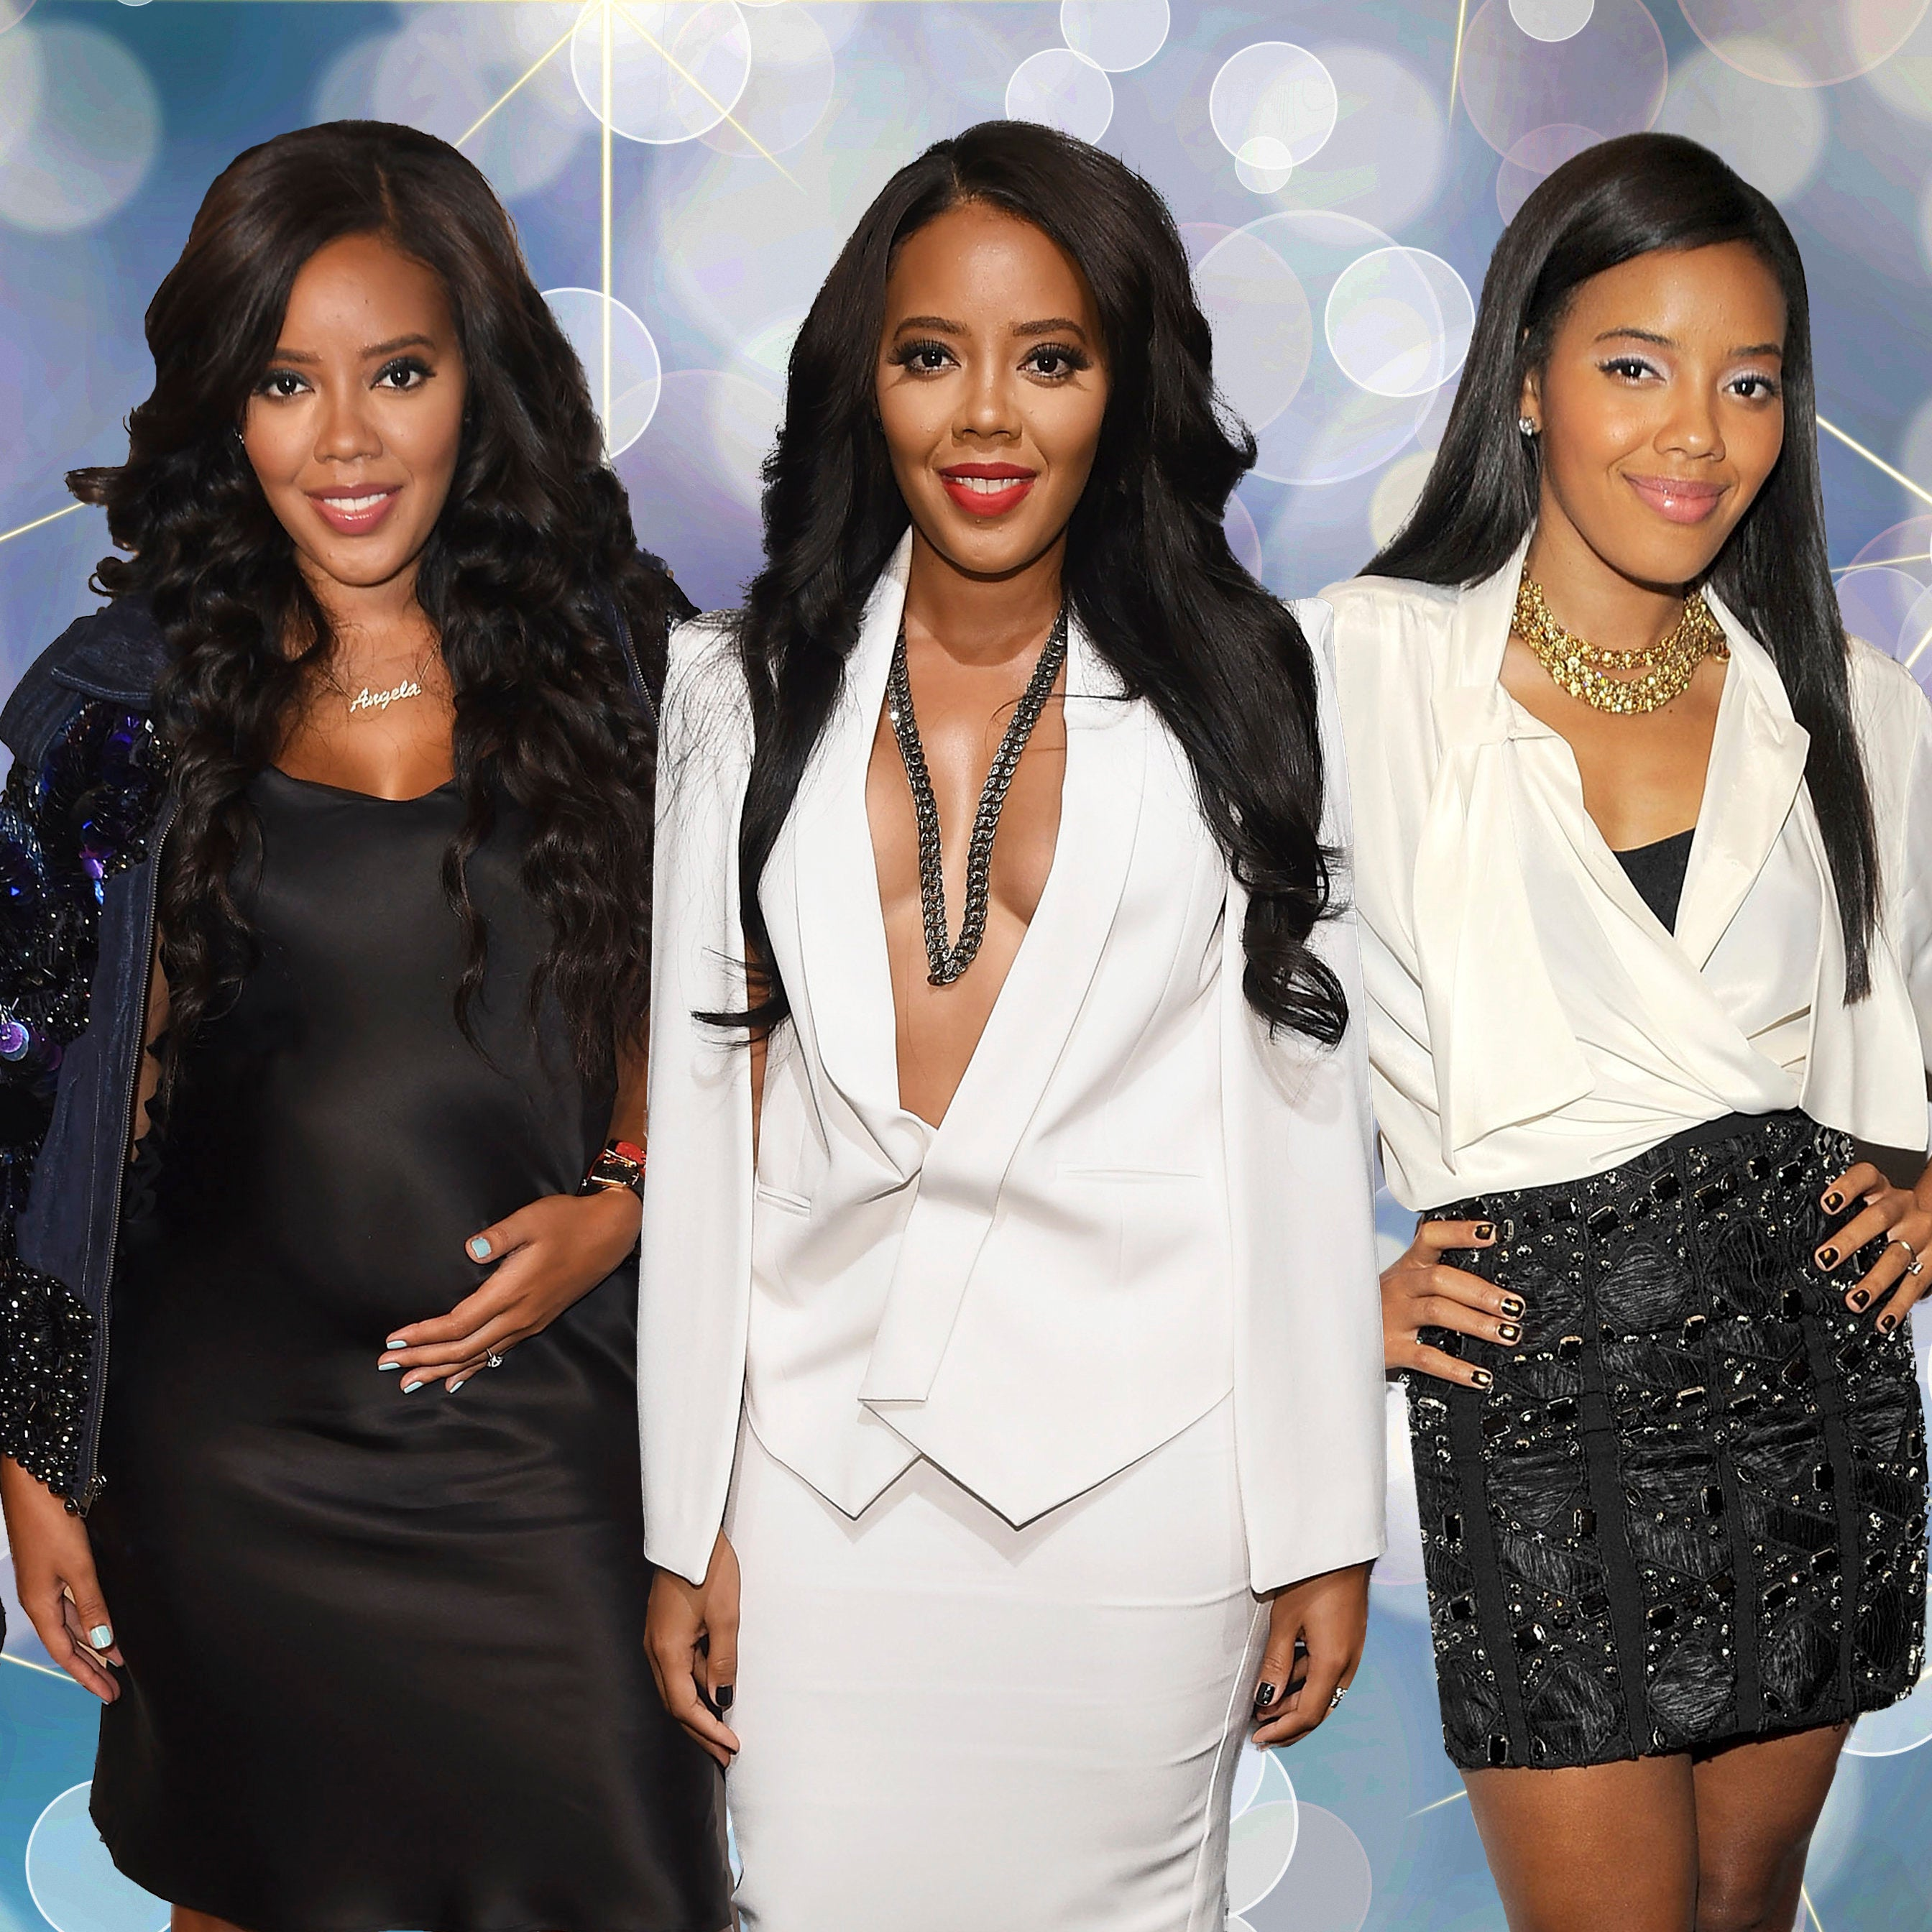 Angela Simmons' Evolution From Reality Star To Young Mogul Mom